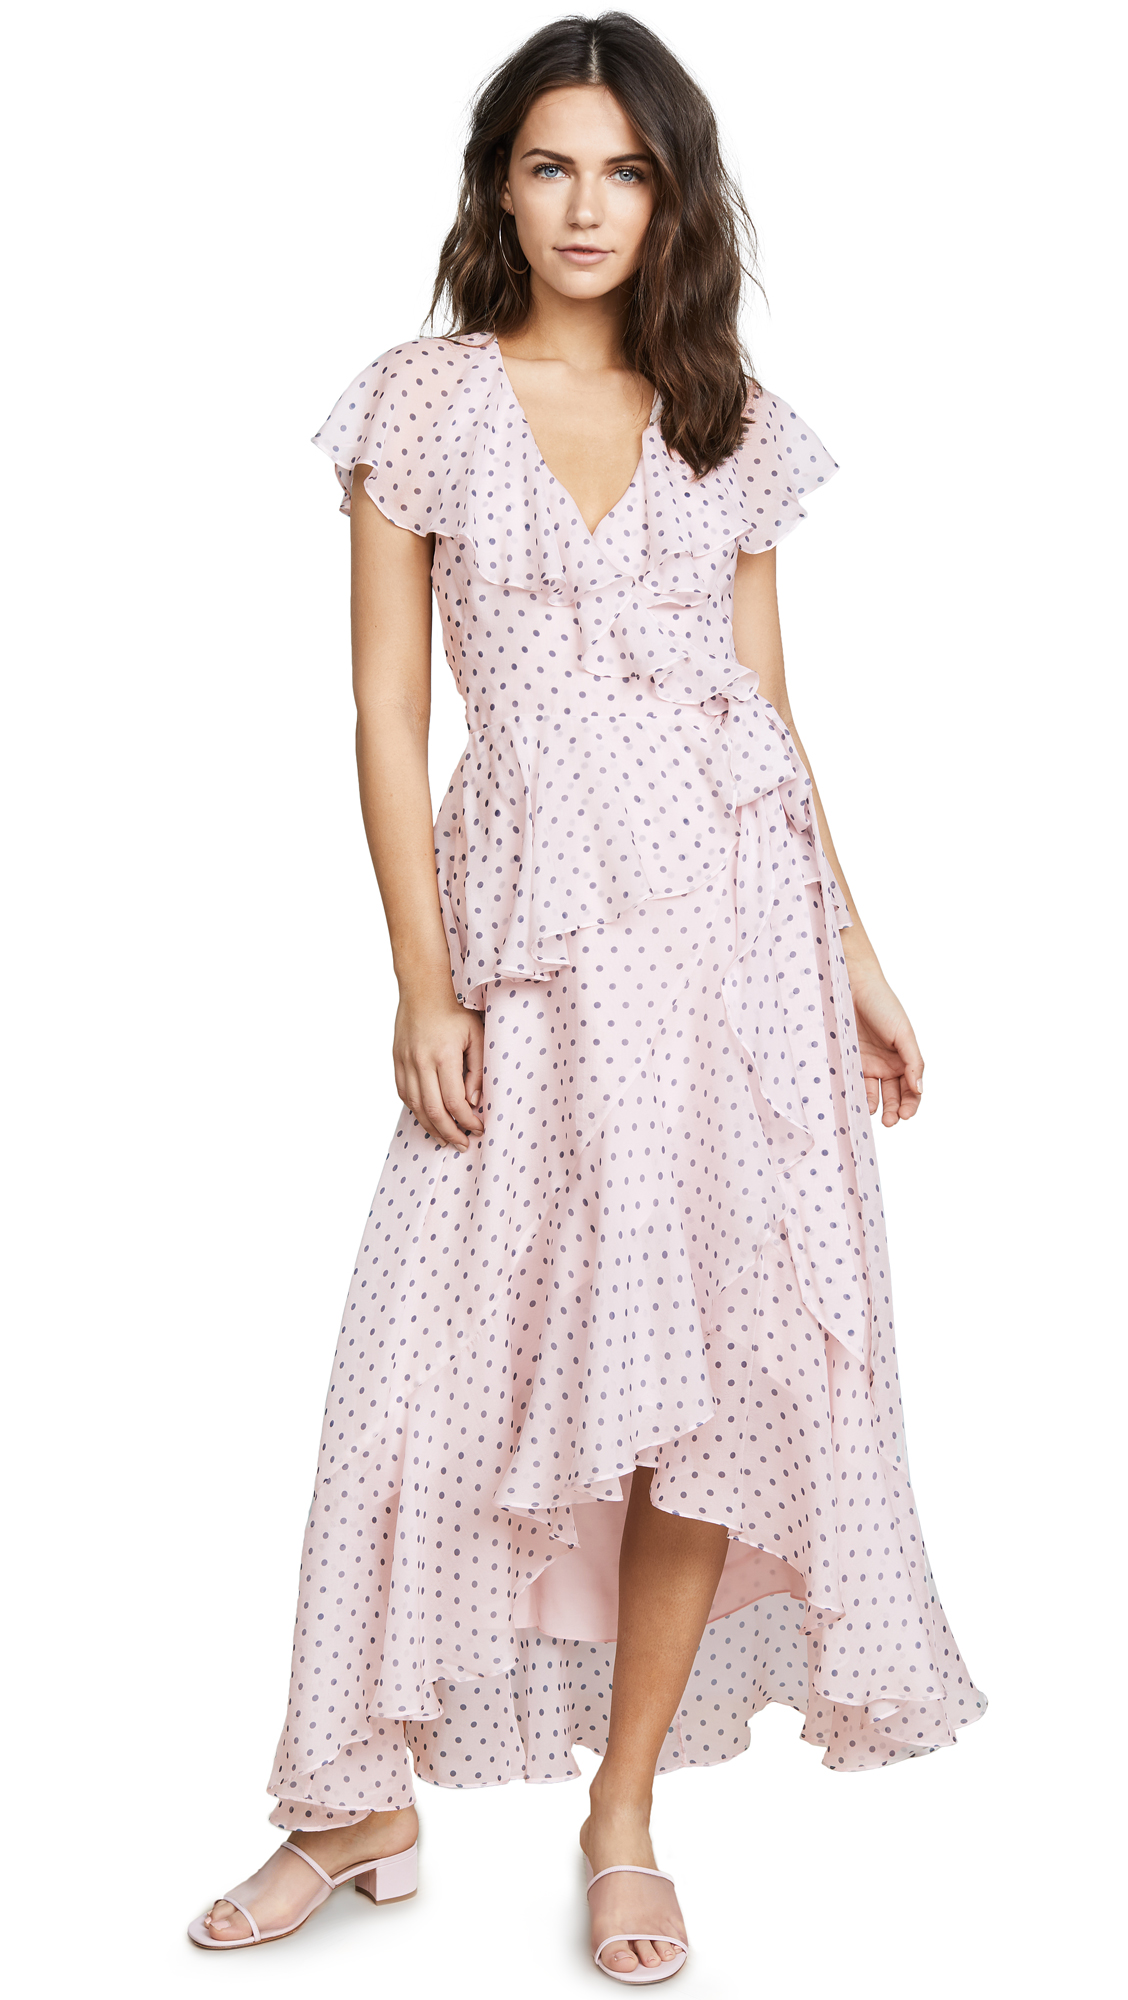 Temperley London Dot Printed Dress